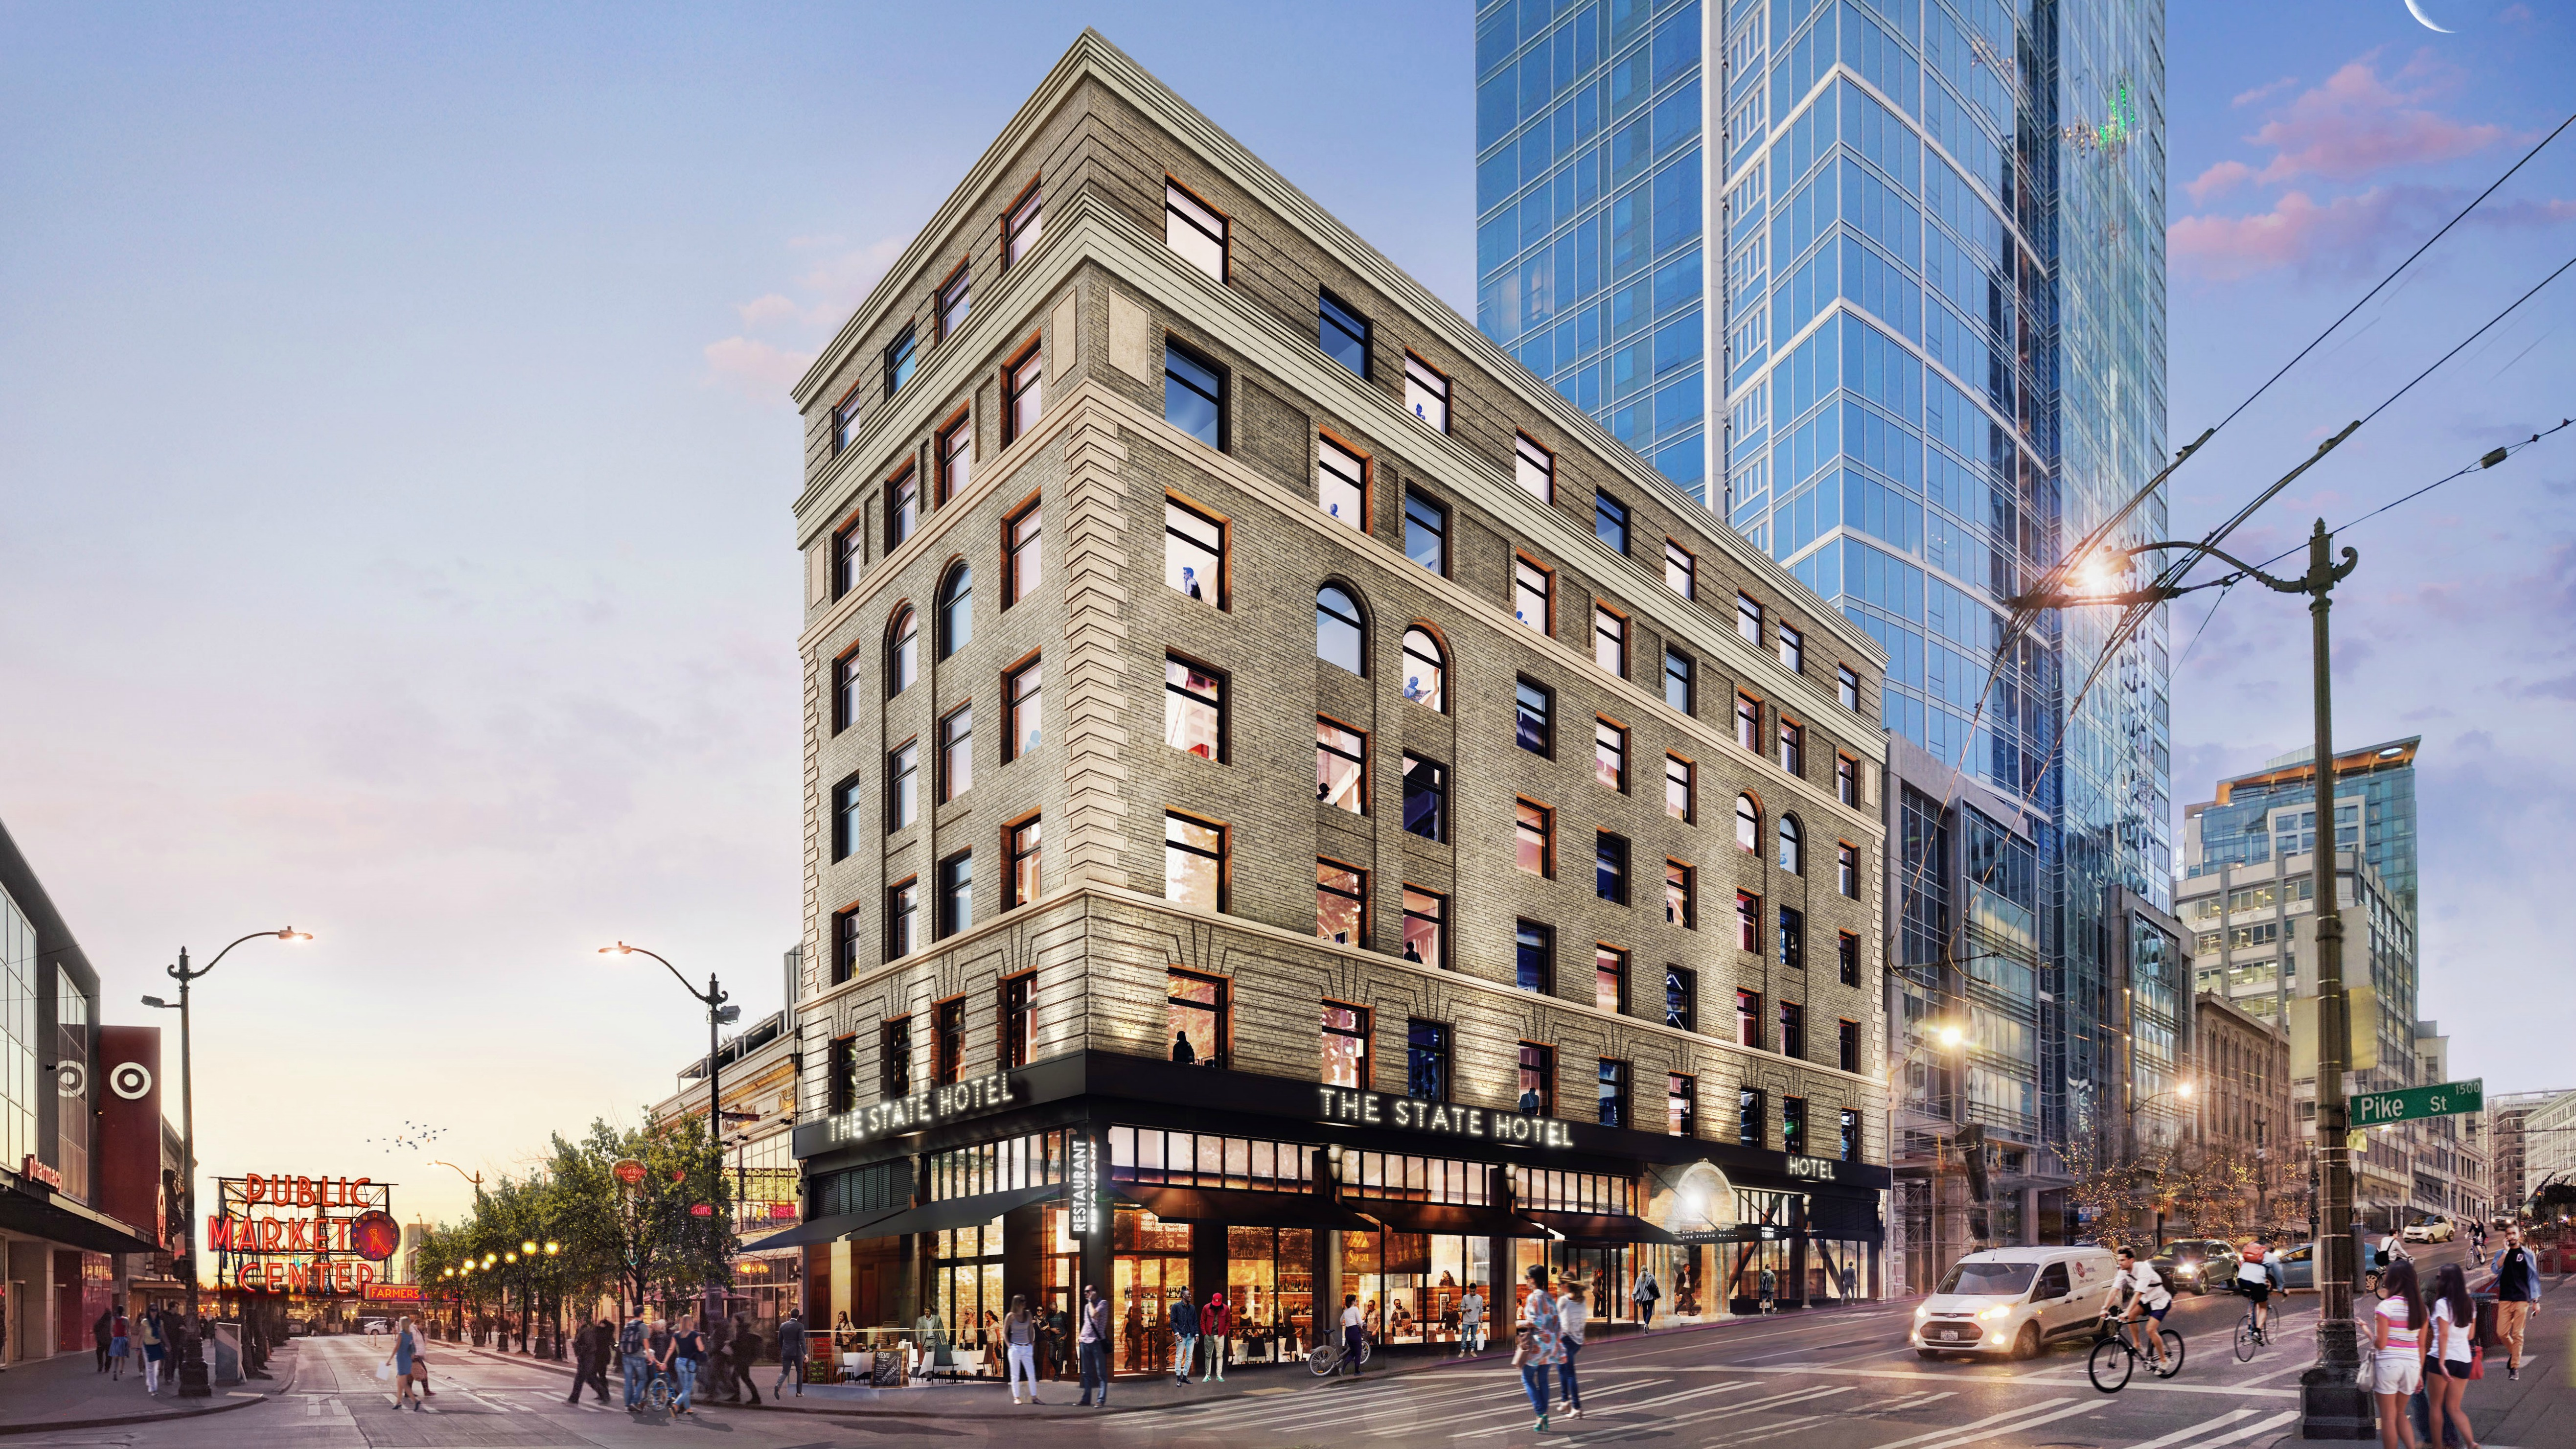 Independent boutique hotel coming to historic for Independent boutique hotels